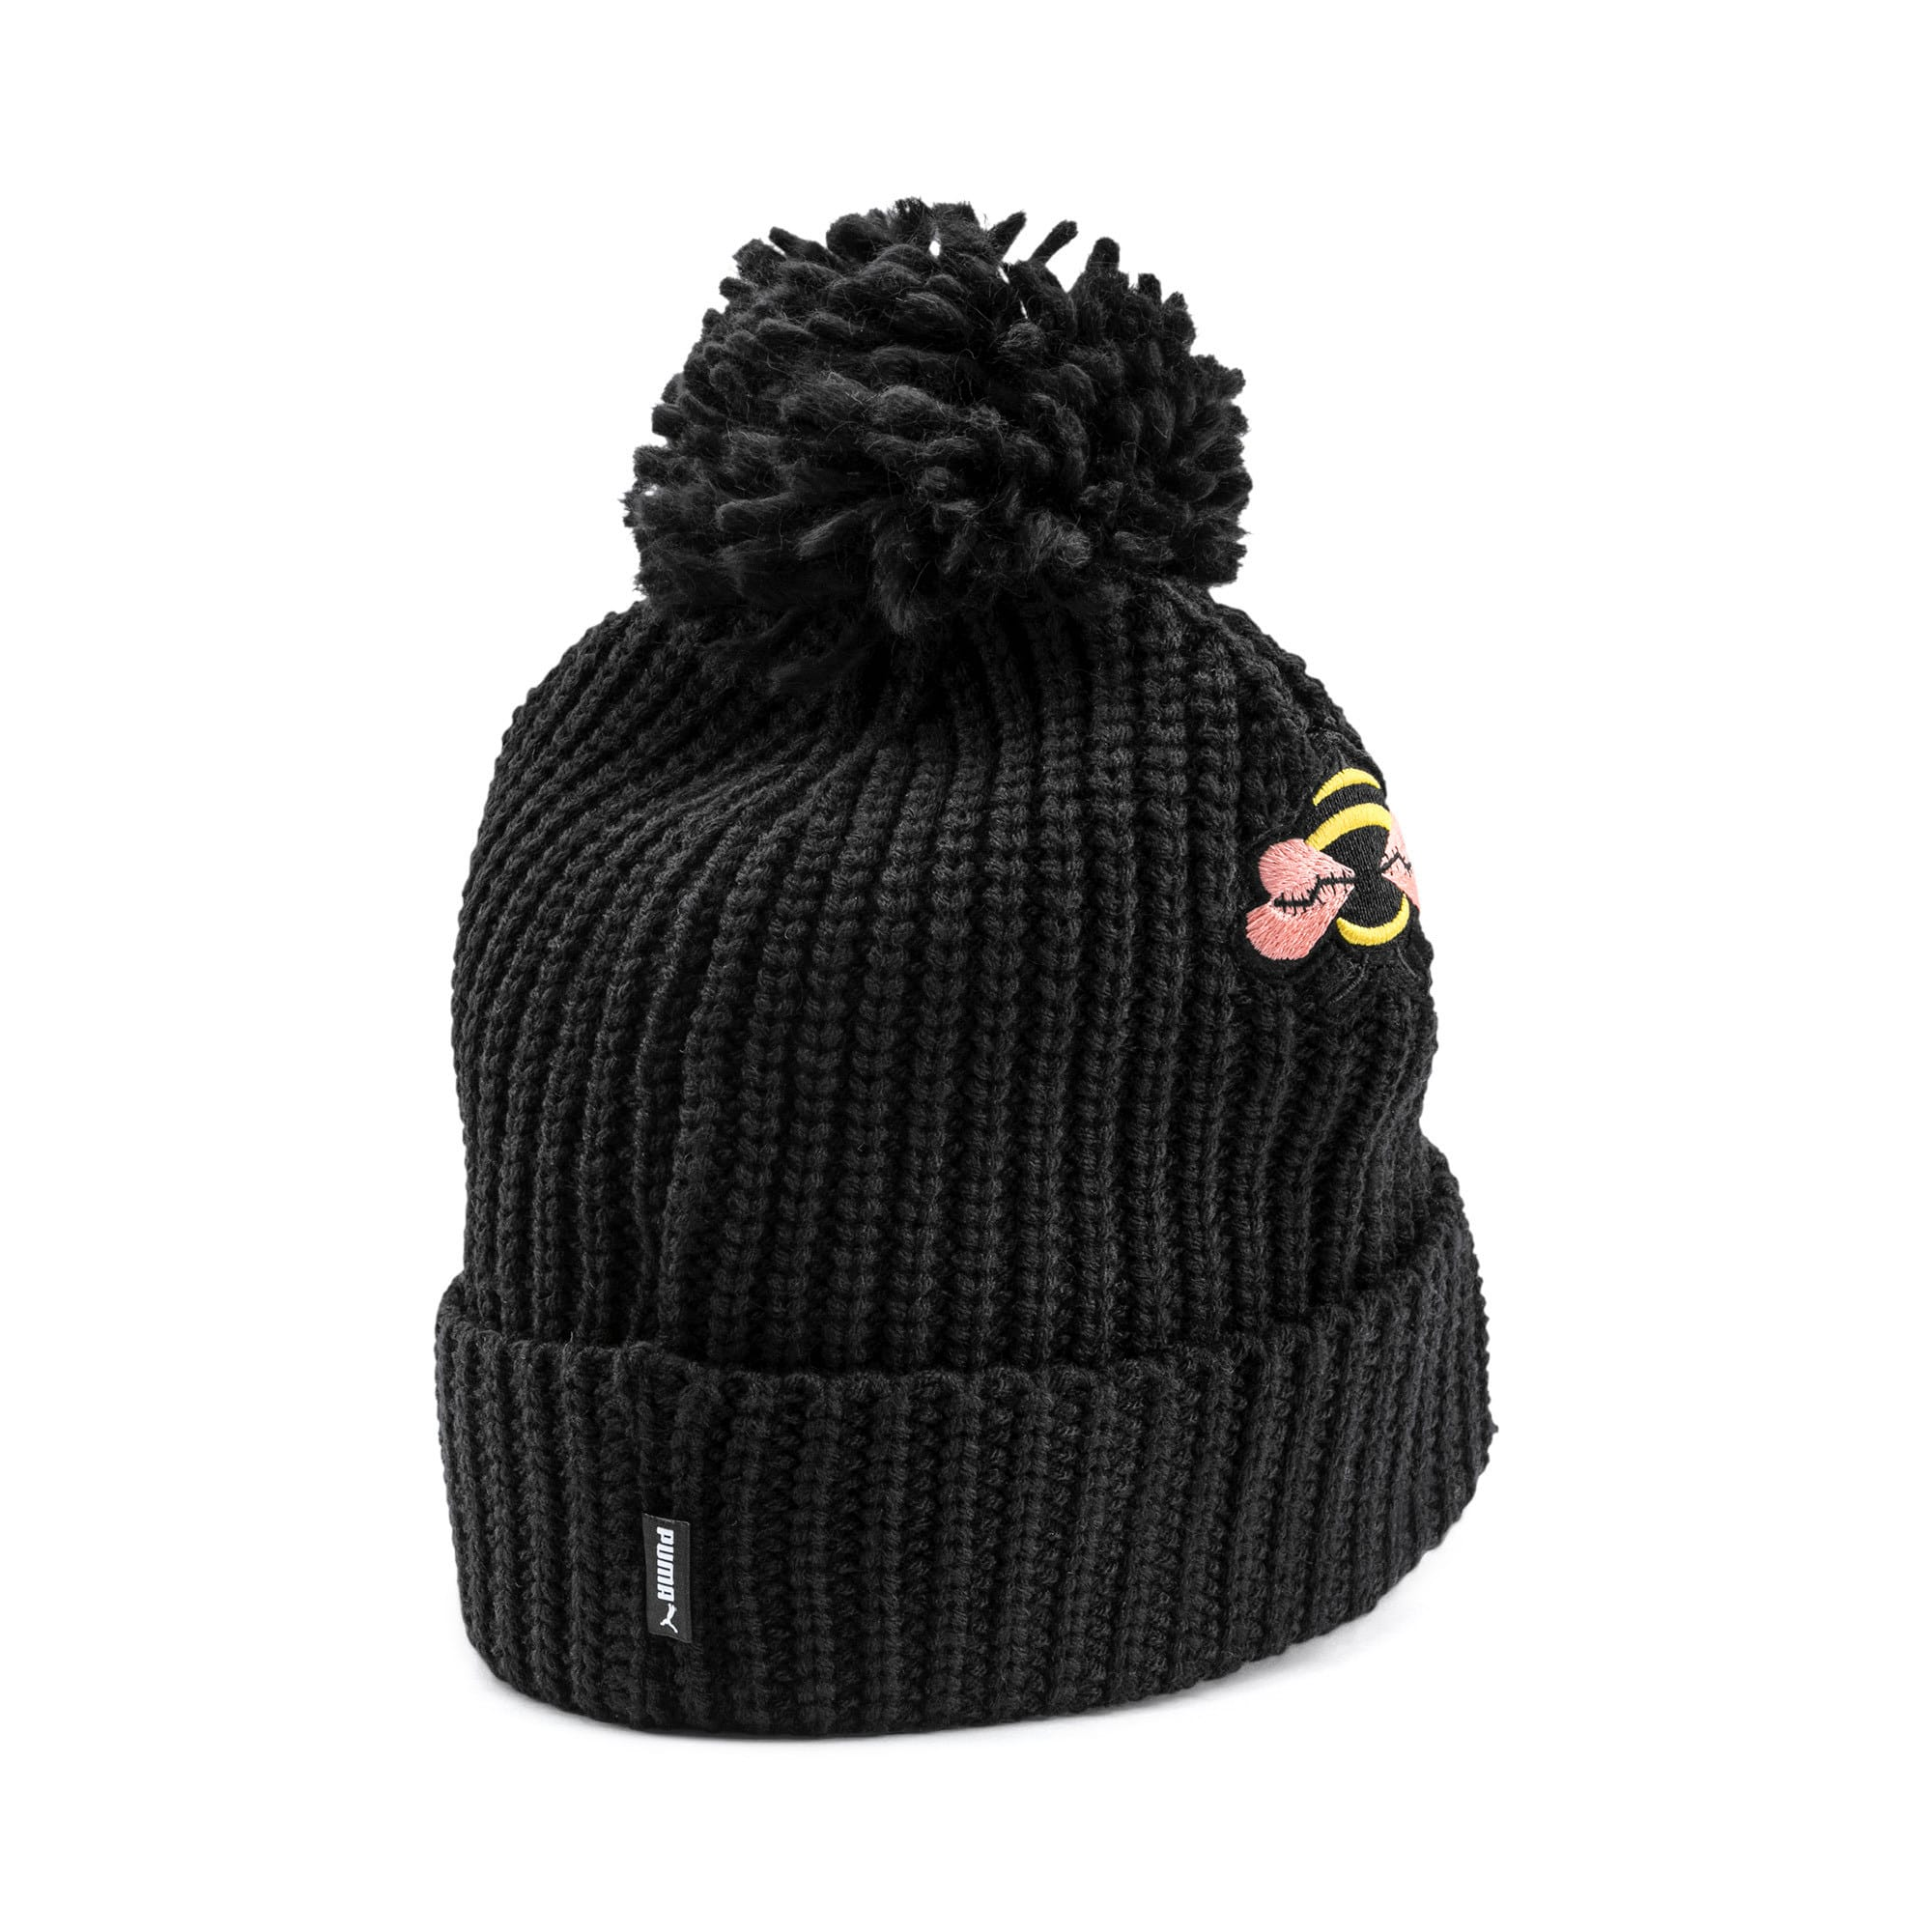 Thumbnail 2 of PUMA x SUE TSAI Beanie, Puma Black, medium